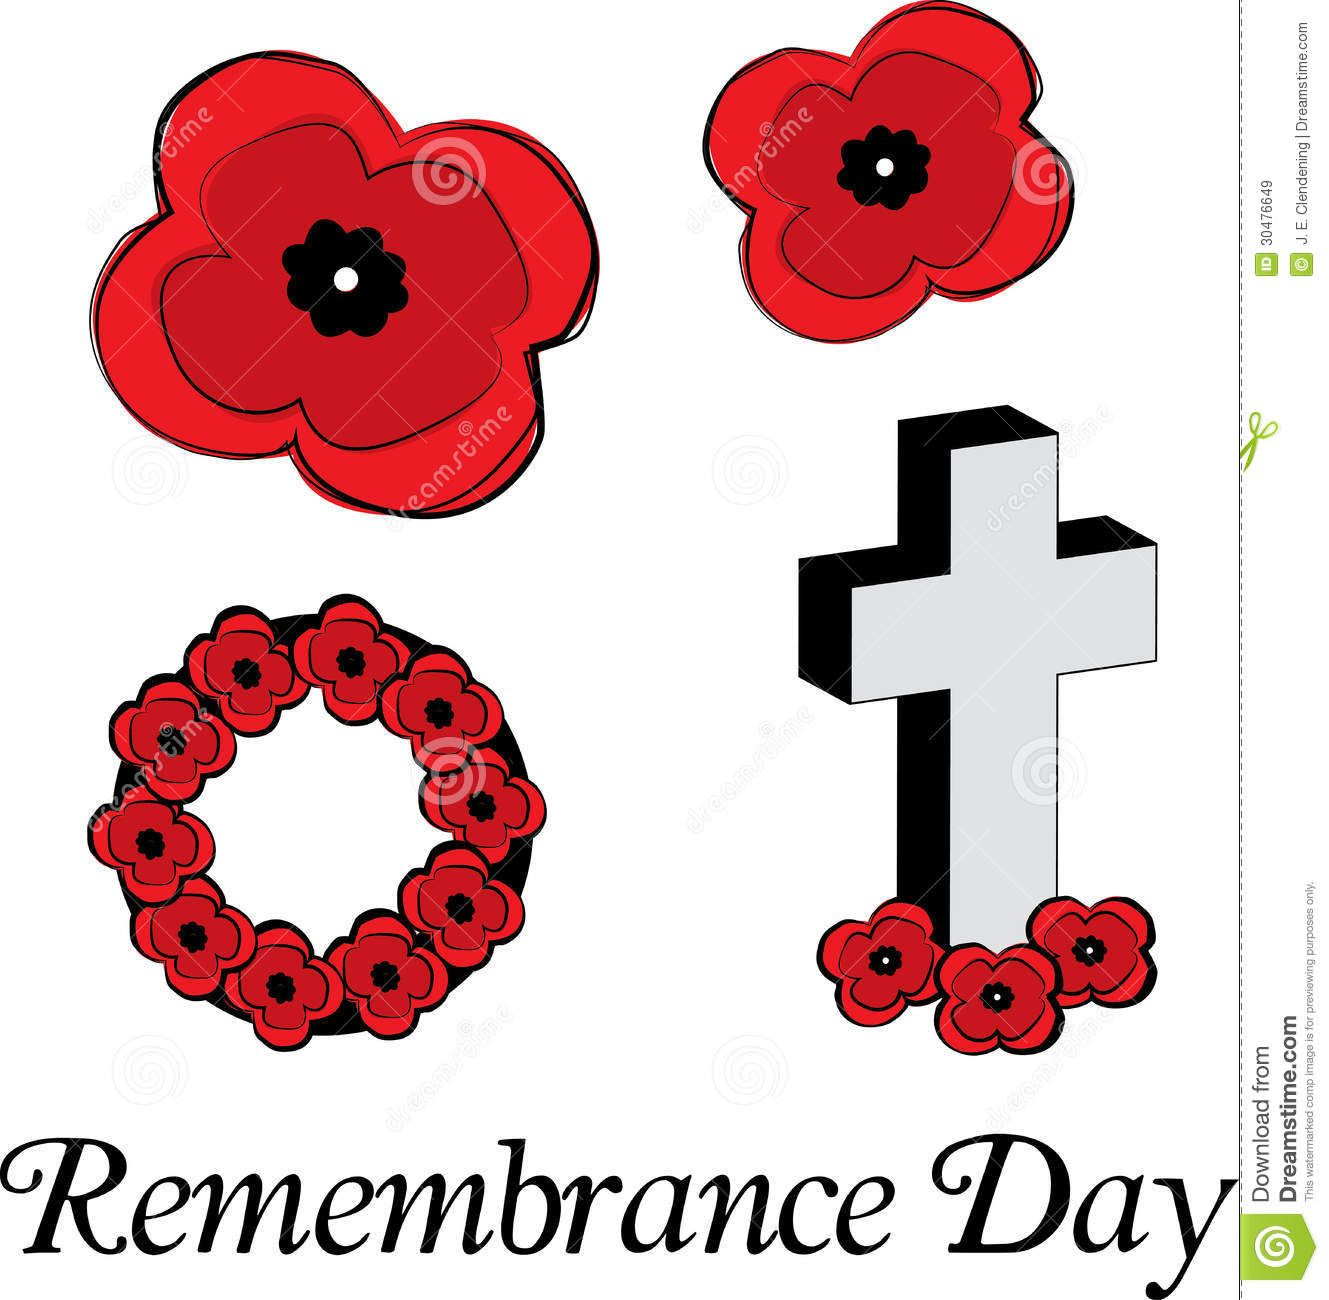 Remembrance day poppy flowers clipart poppies and scottish remembrance day poppy flowers clipart mightylinksfo